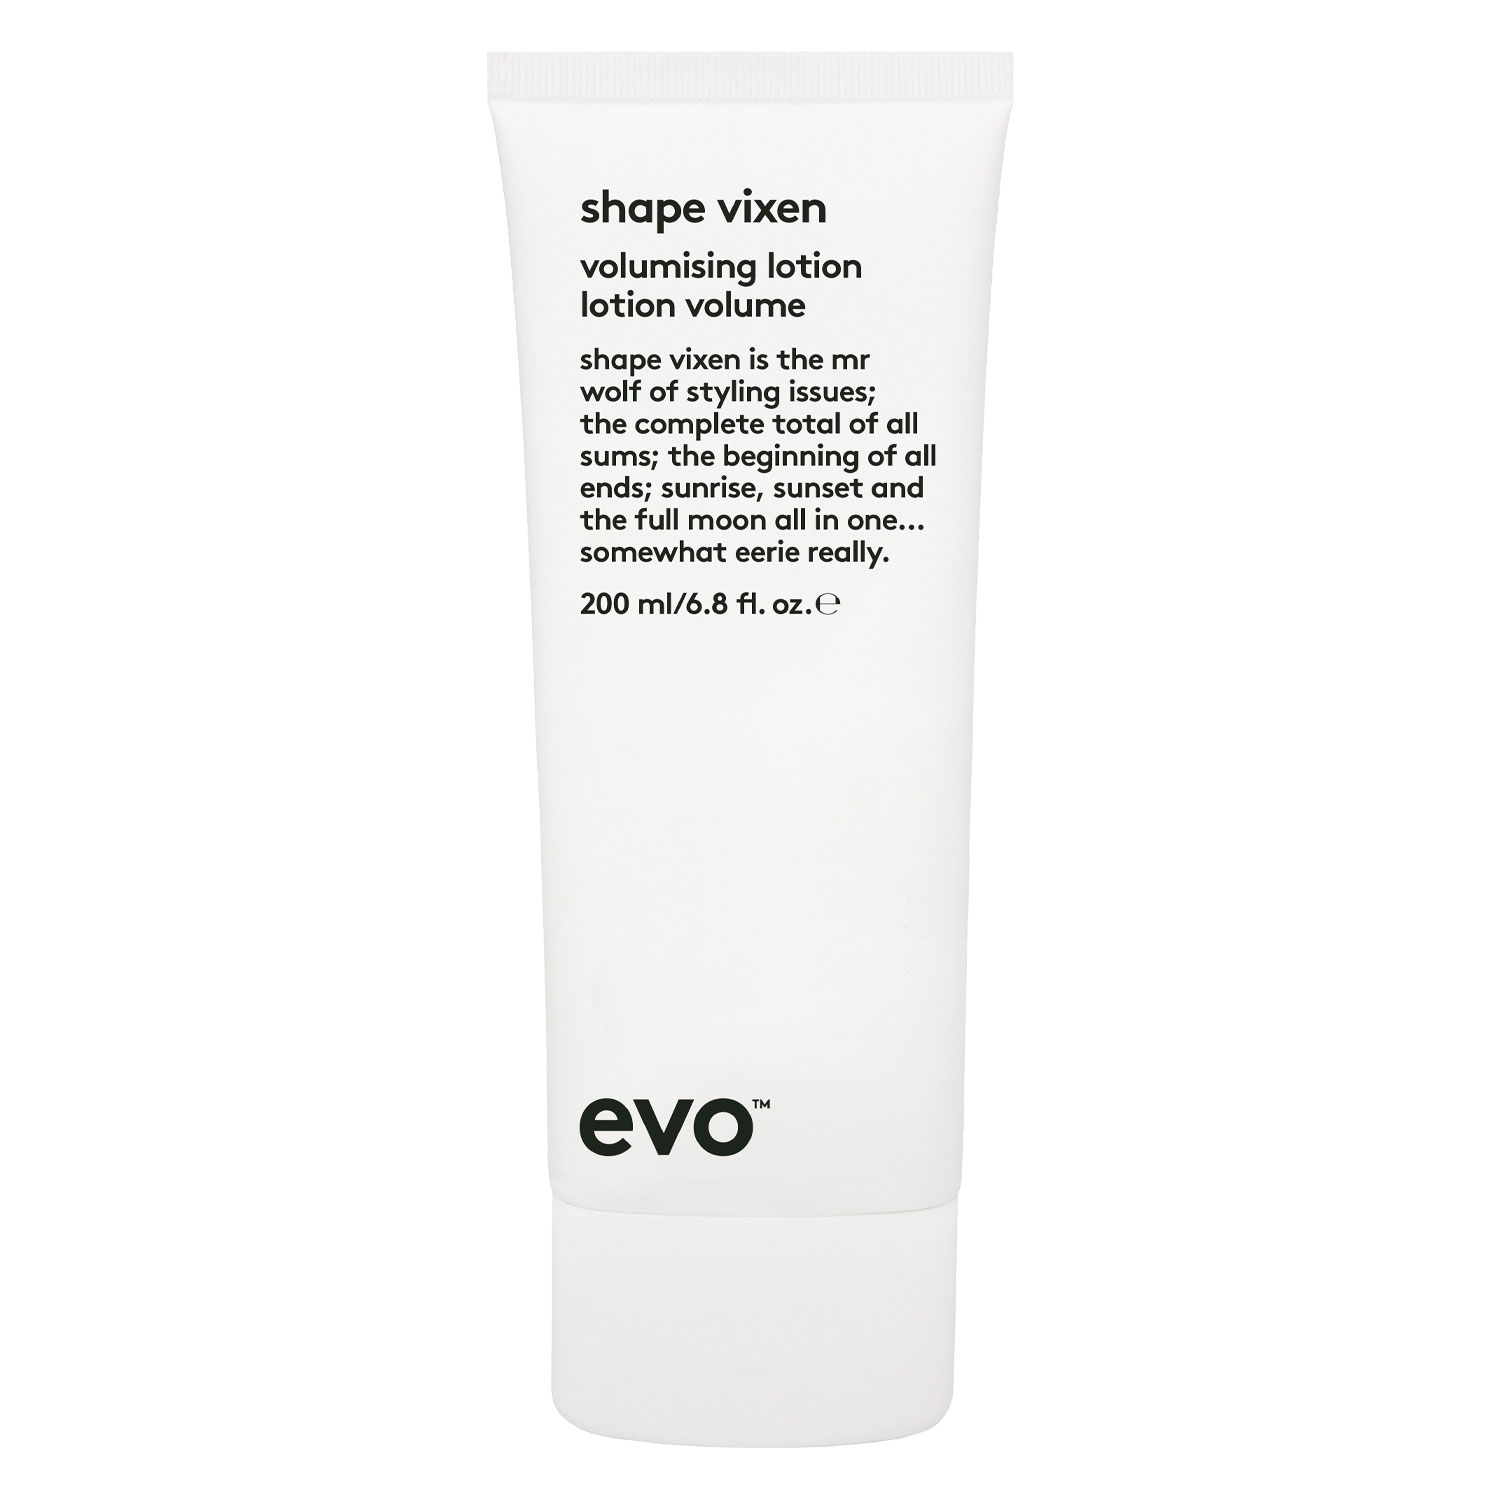 evo volume - shape vixen volumising lotion